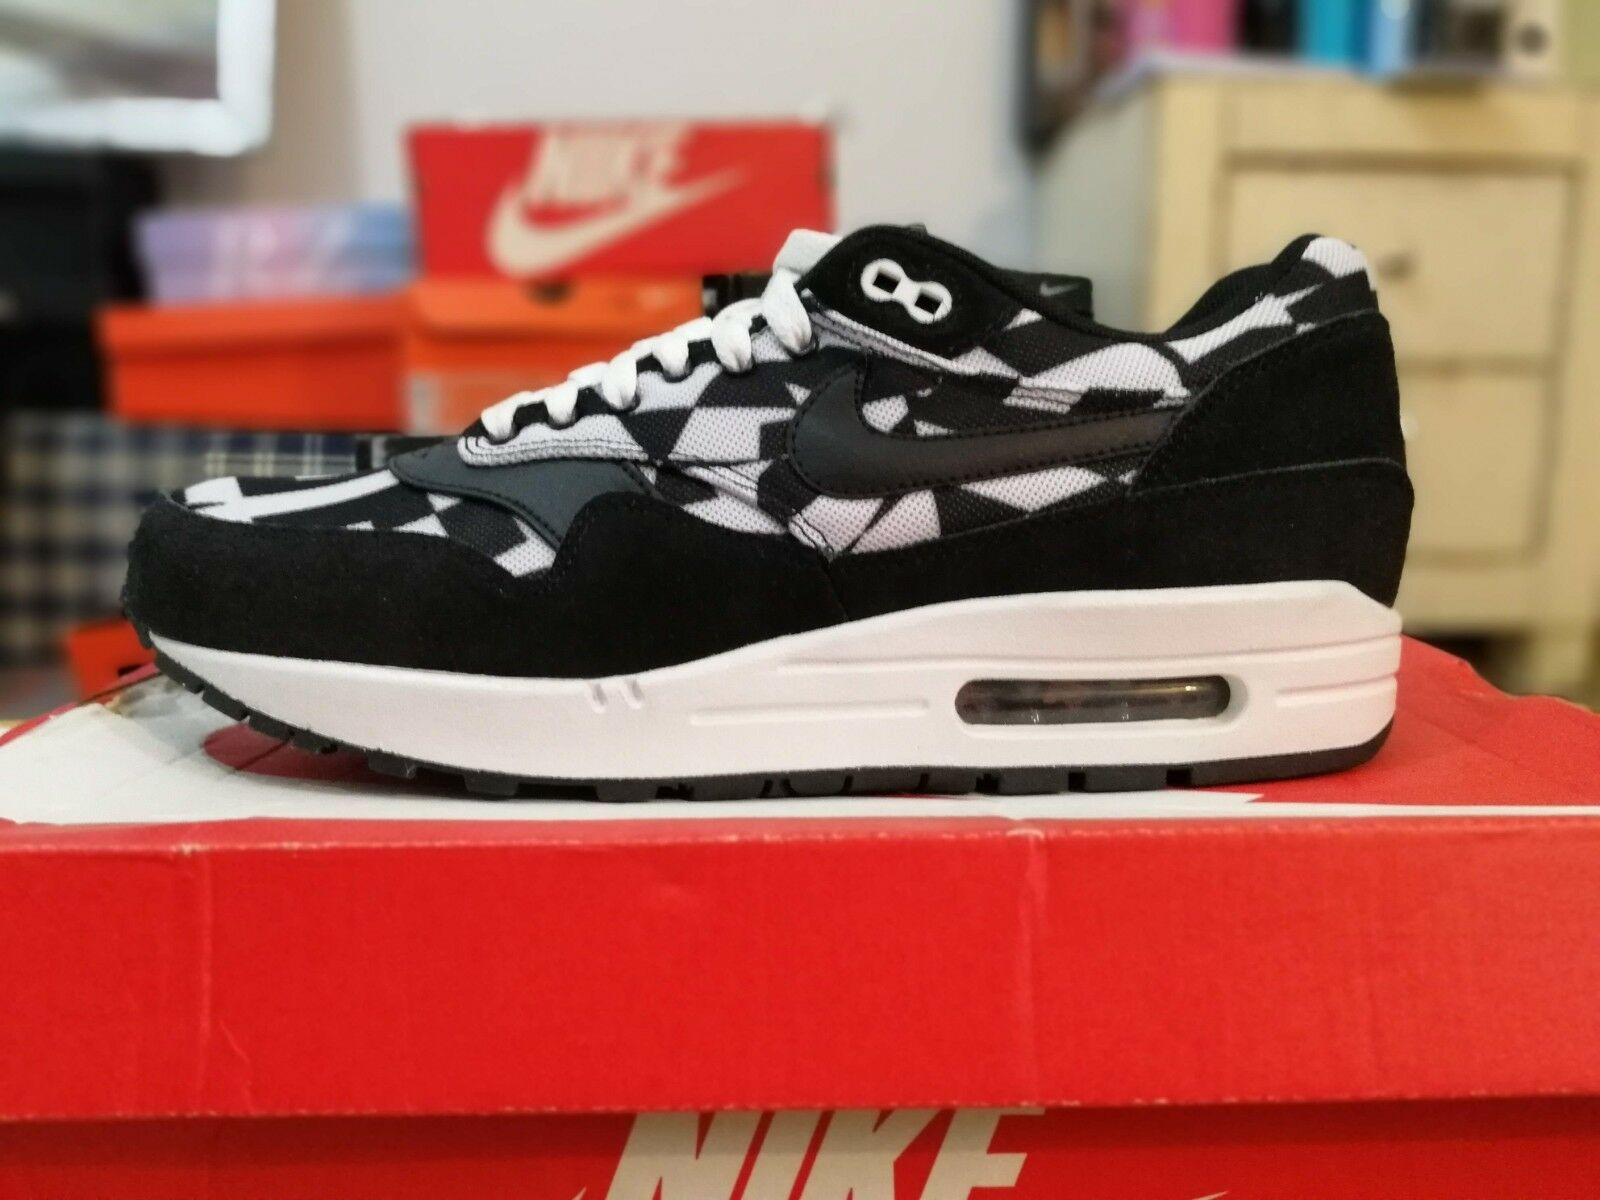 Nike Air Max 1 GPX shoes Size 9.5US 43EU New with box